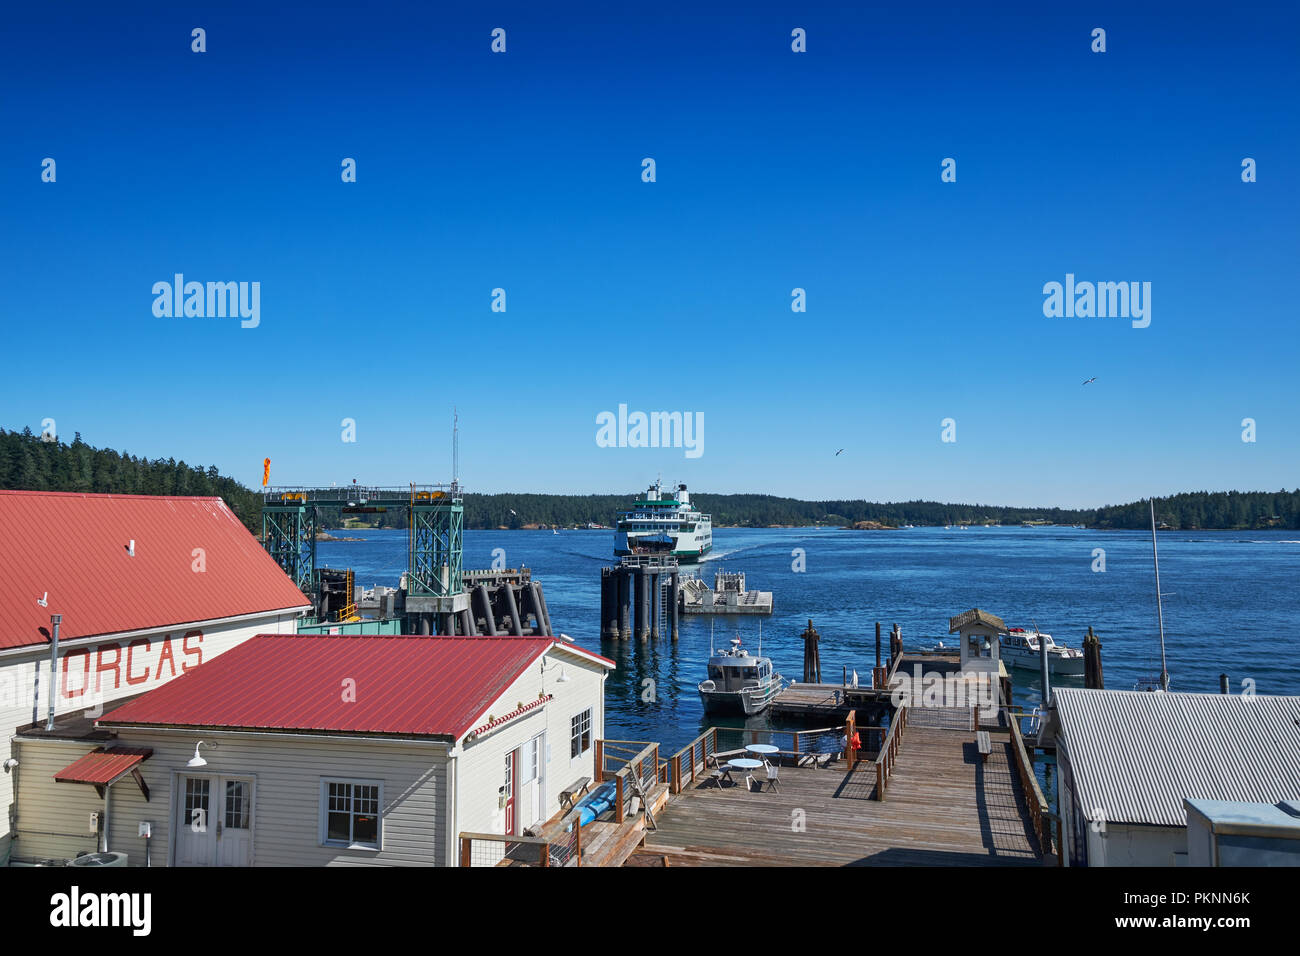 Washington State Ferry approaching the ferry terminal on Orcas Island, San Juan Islands - Stock Image